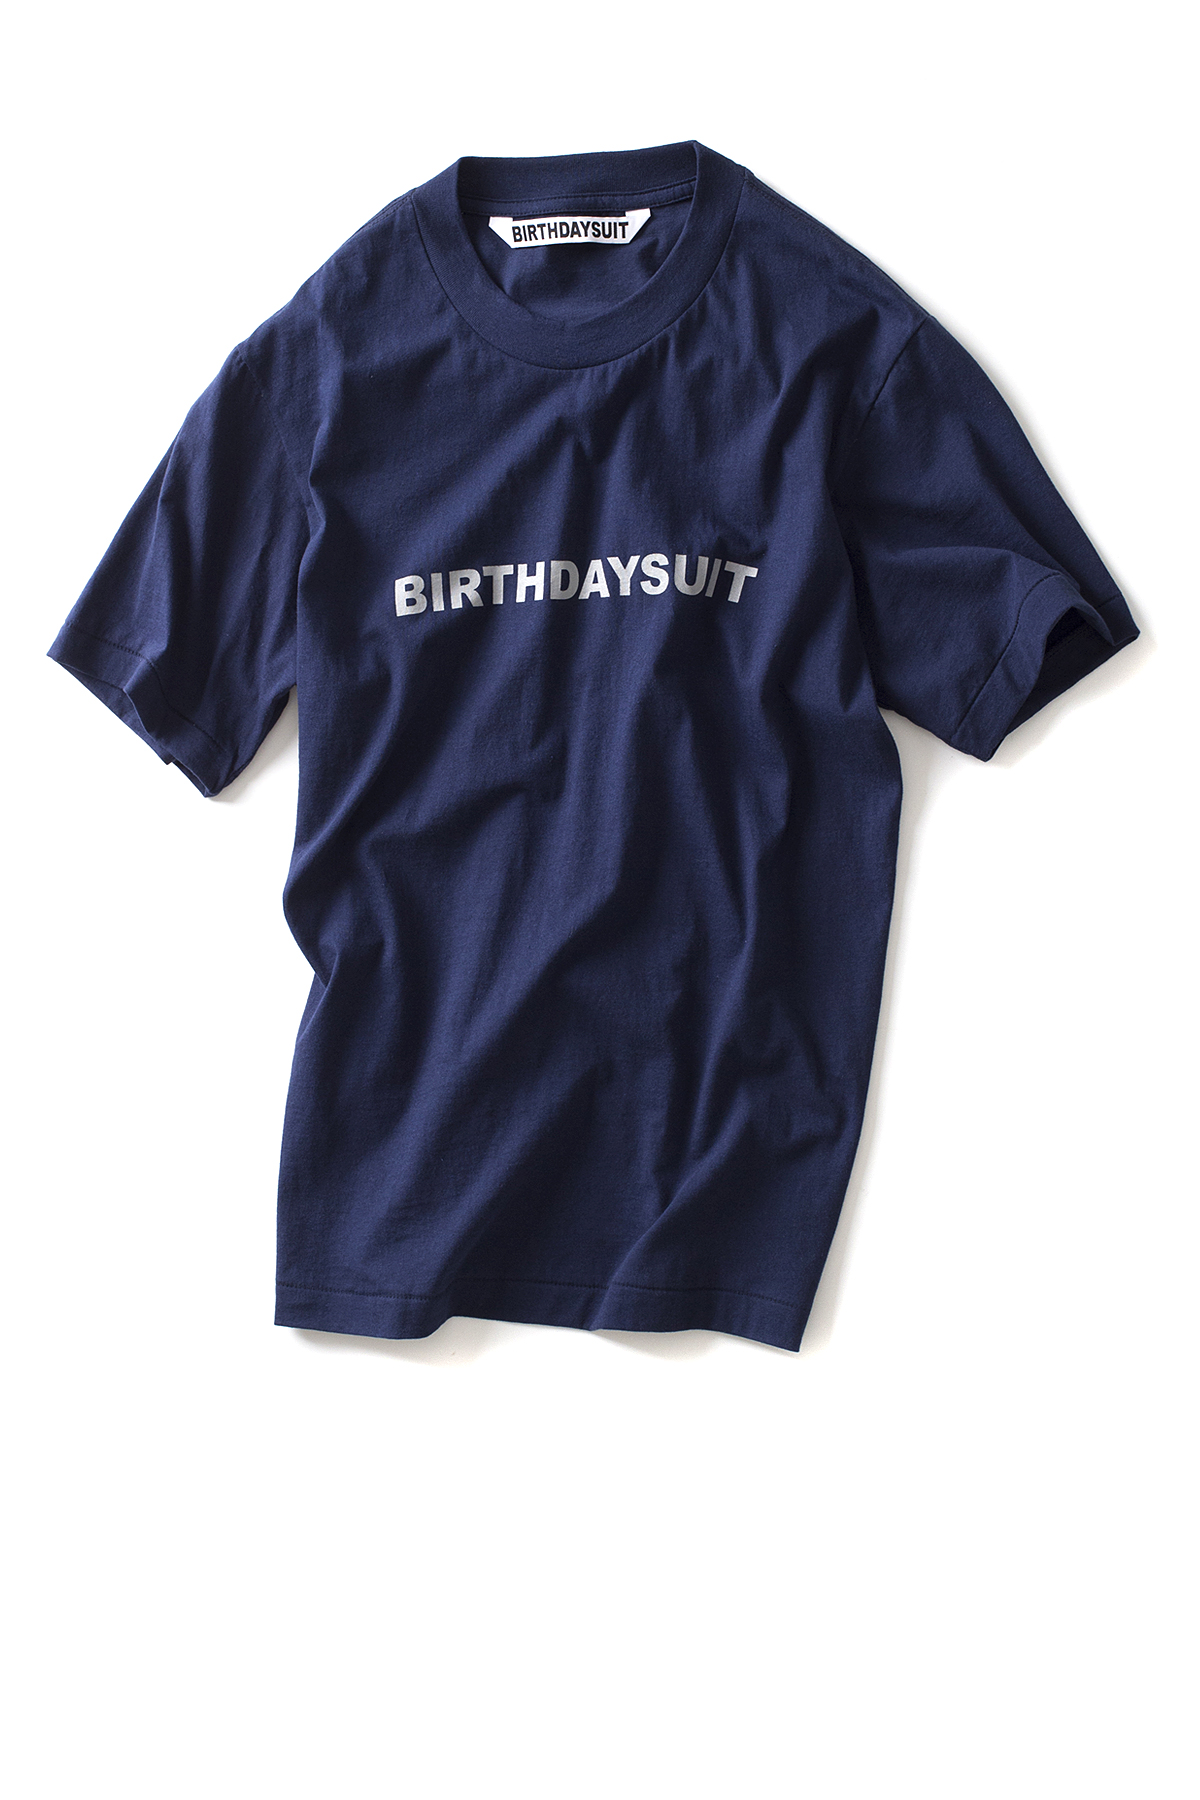 BIRTHDAYSUIT : Vacation T-Shirt (Midnight)